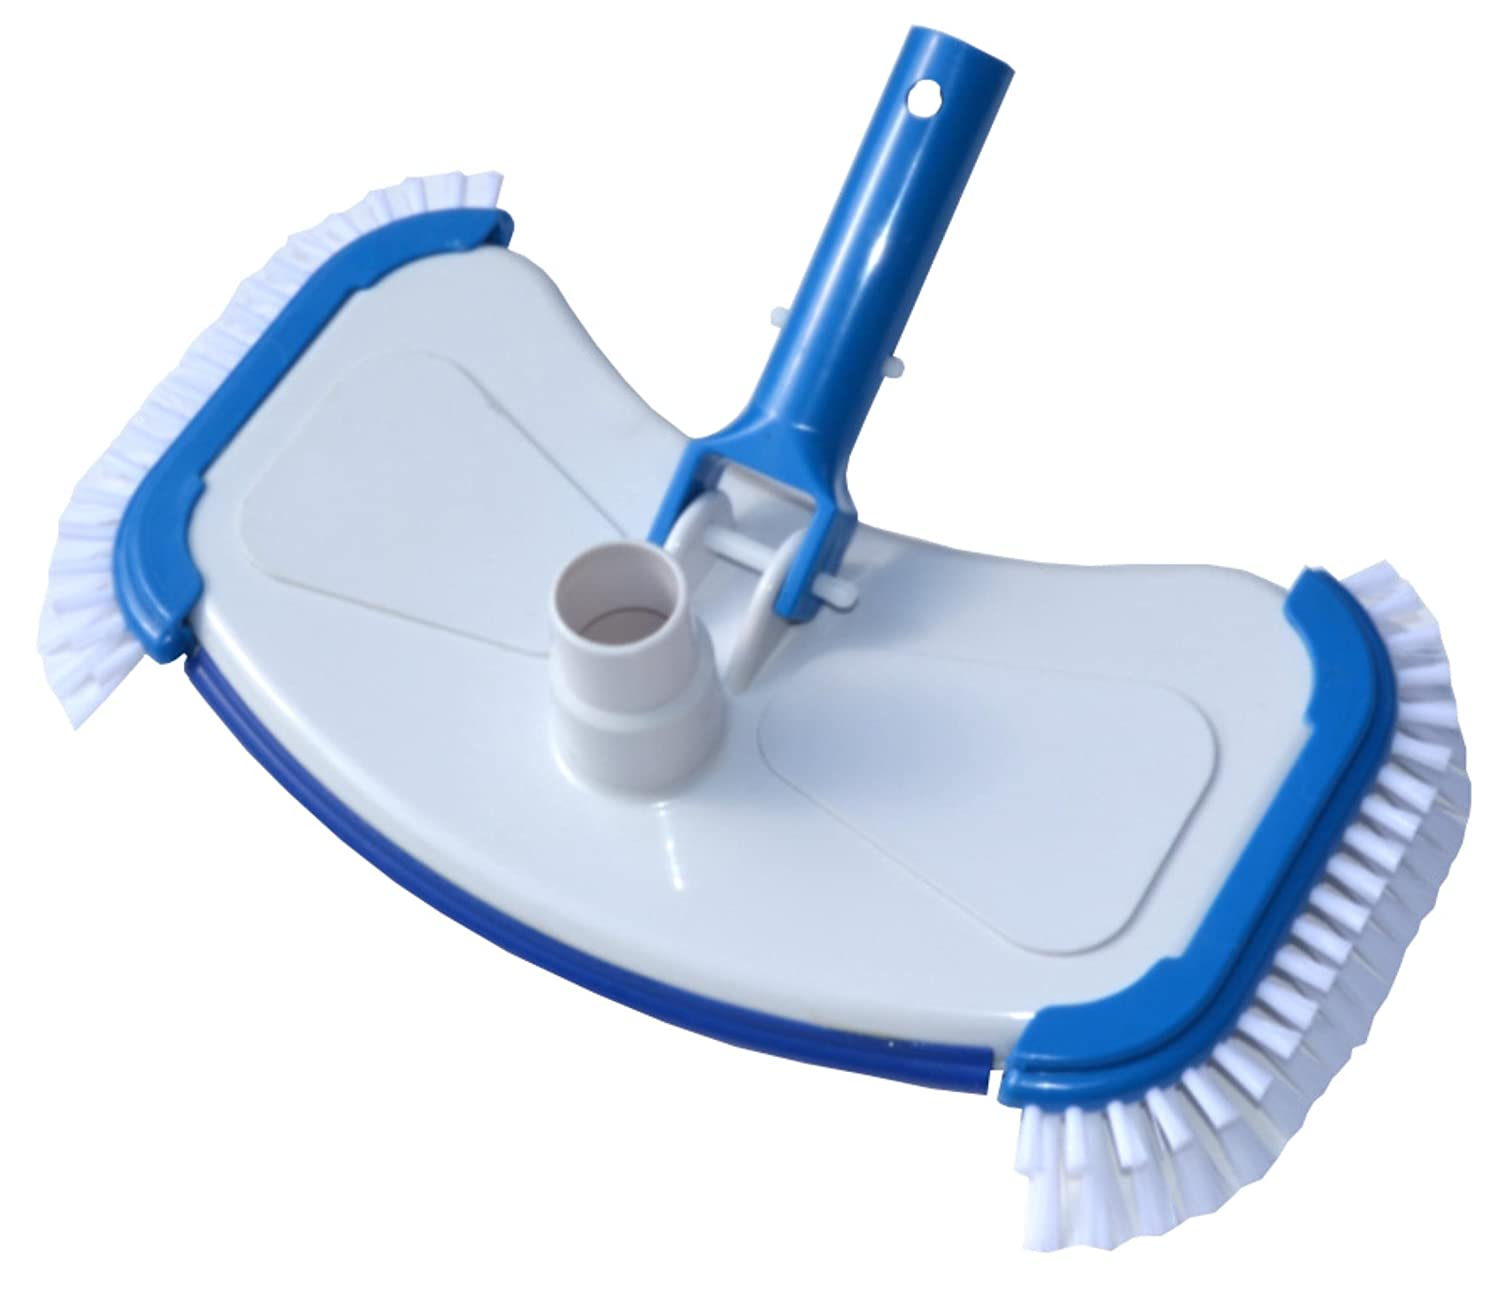 MEGAPOOL VACUUM HEAD DELUXE WITH BRUSHES 0181023